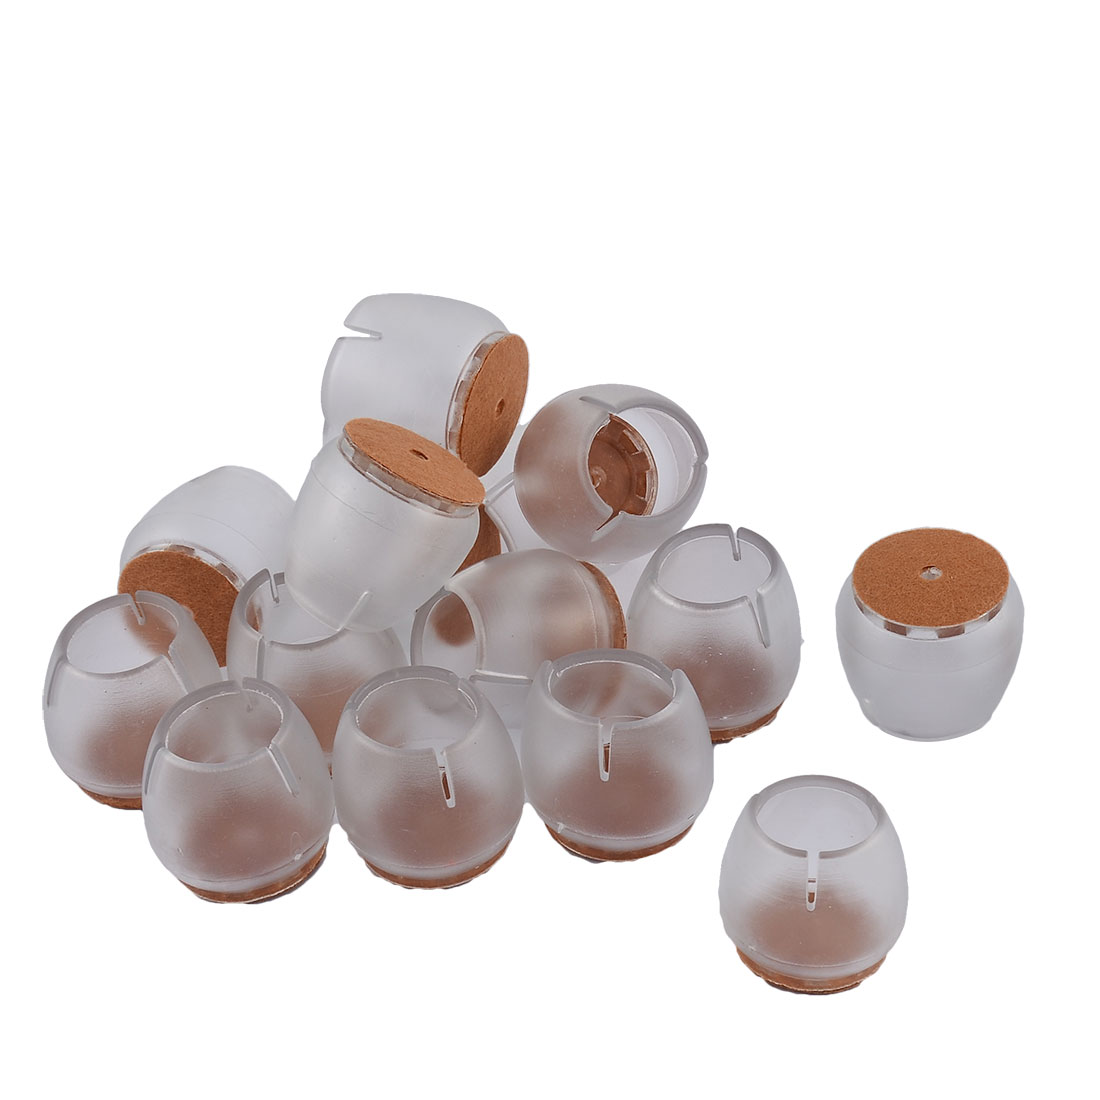 Silicone Round Bottom Floor Protector Furniture Foot Leg Tip Cap Cover Clear 3.4 x 3cm 16pcs